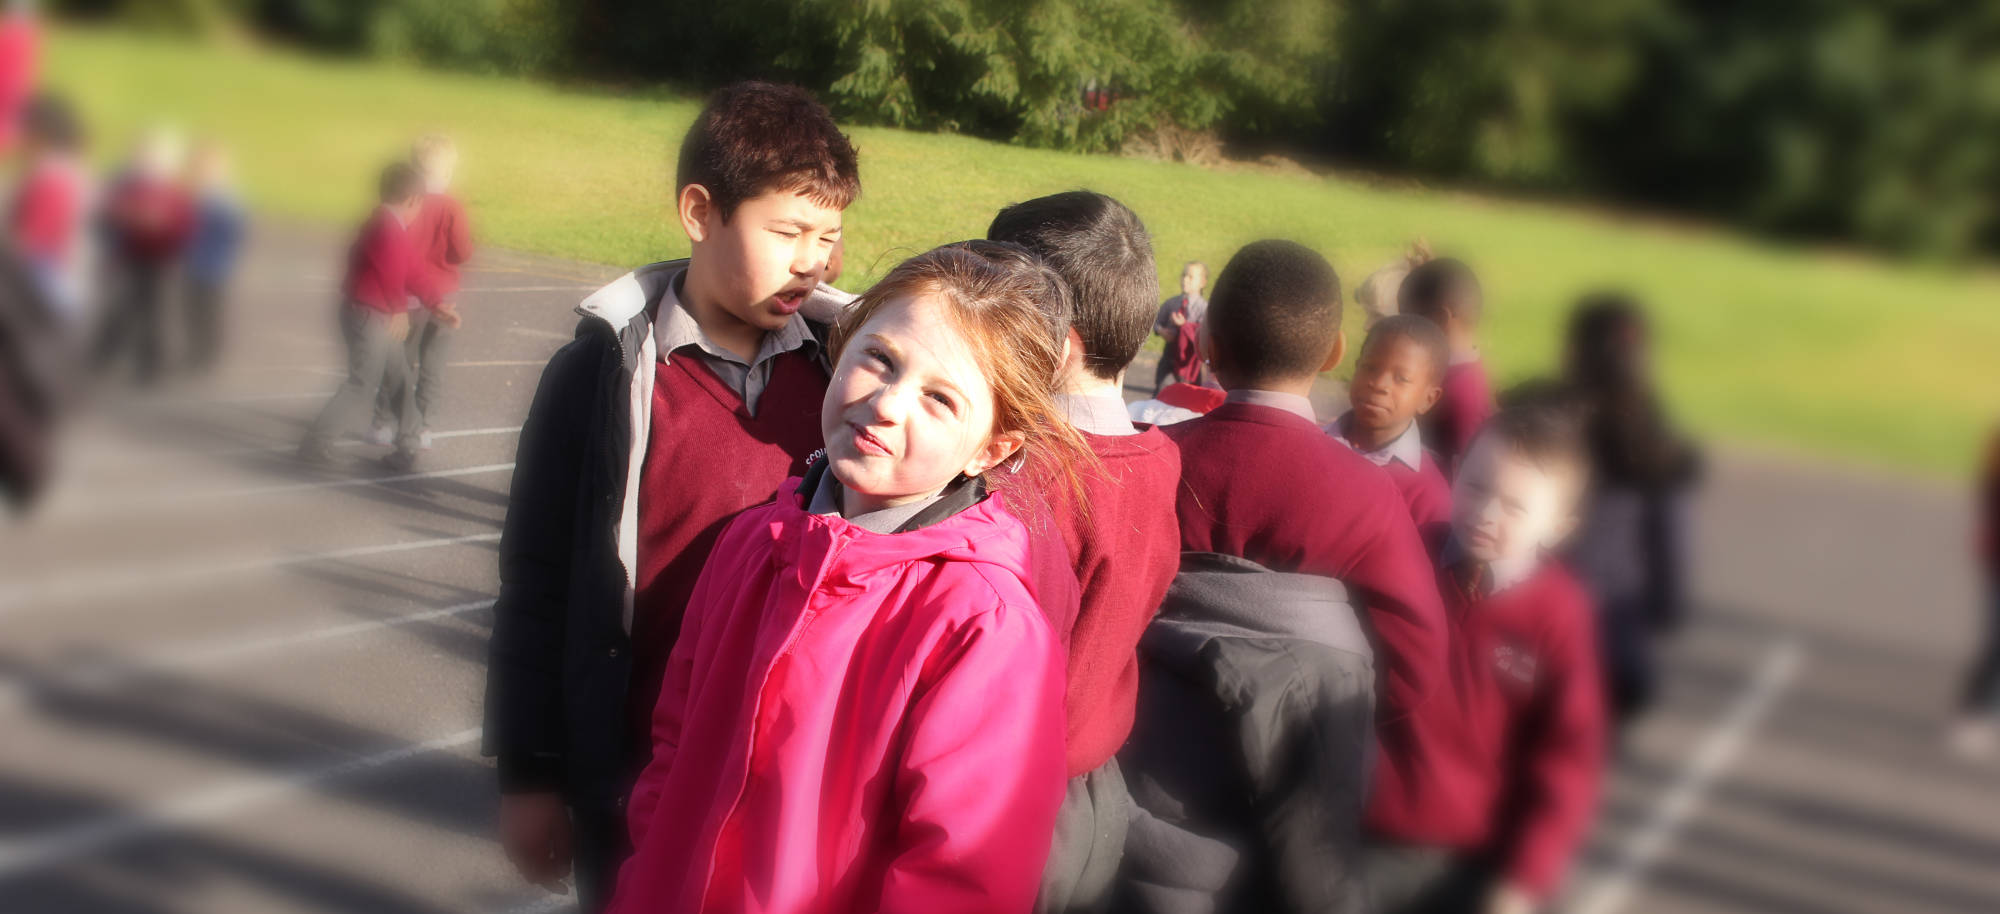 A pupil looking straight into camera with other children playing in the courtyard background.